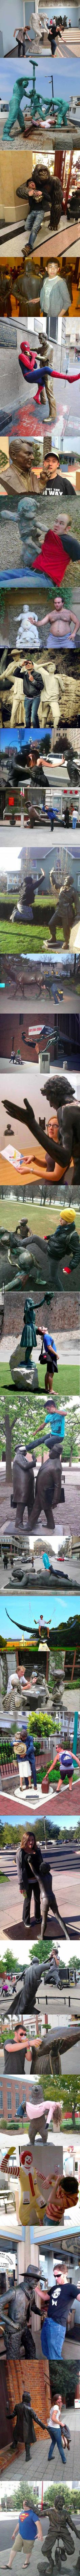 Statues having fun with people is part of humor - More memes, funny videos and pics on Really Funny Memes, Stupid Funny Memes, Funny Laugh, Funny Relatable Memes, Funny Posts, Funny Stuff, Fun With Statues, Funny Images, Funny Pictures